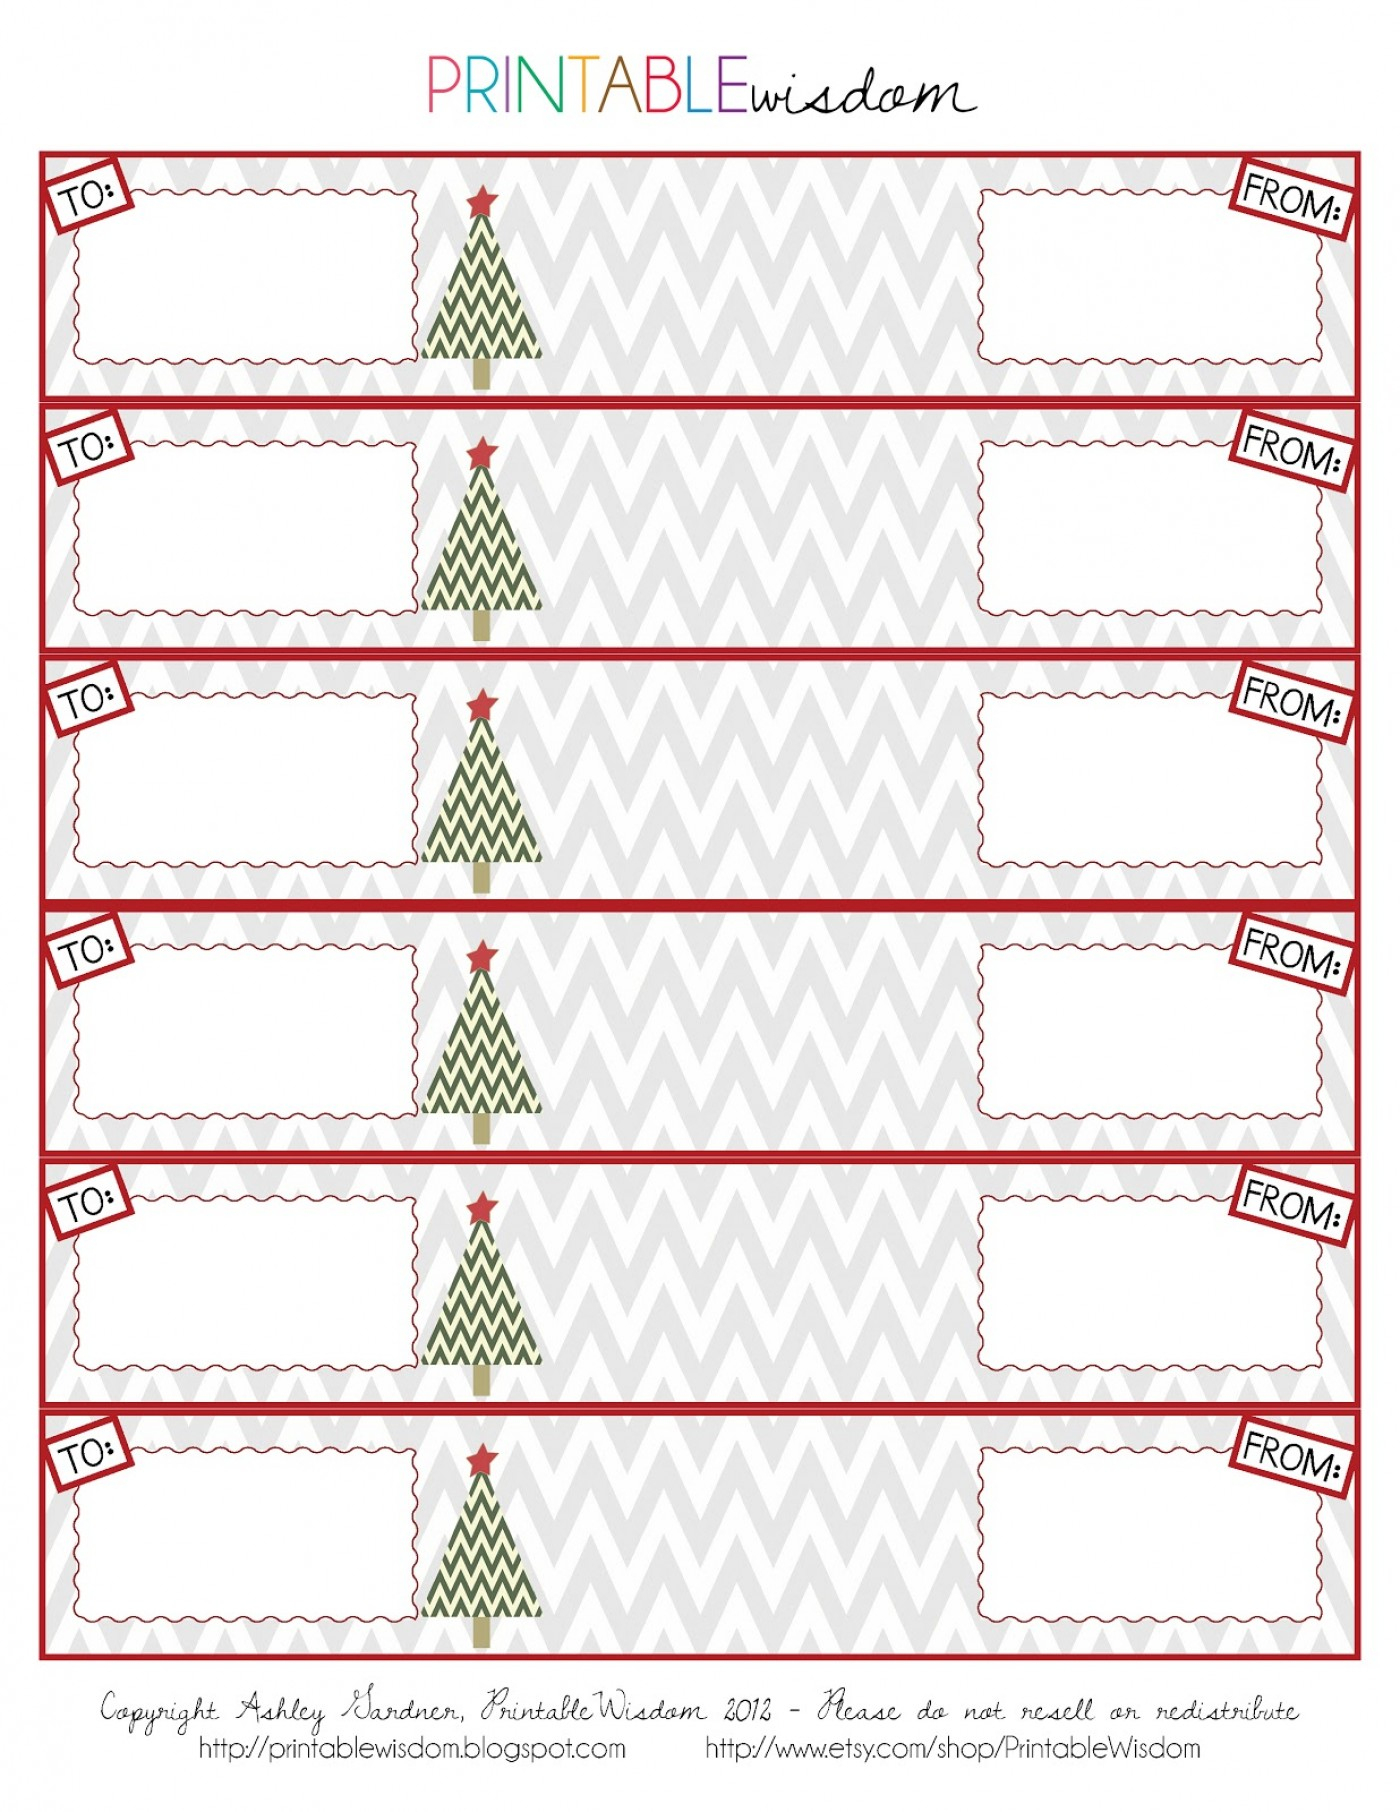 009 Free Printable Christmas Address Labels Happy Holidays Holiday - Free Printable Christmas Address Labels Avery 5160